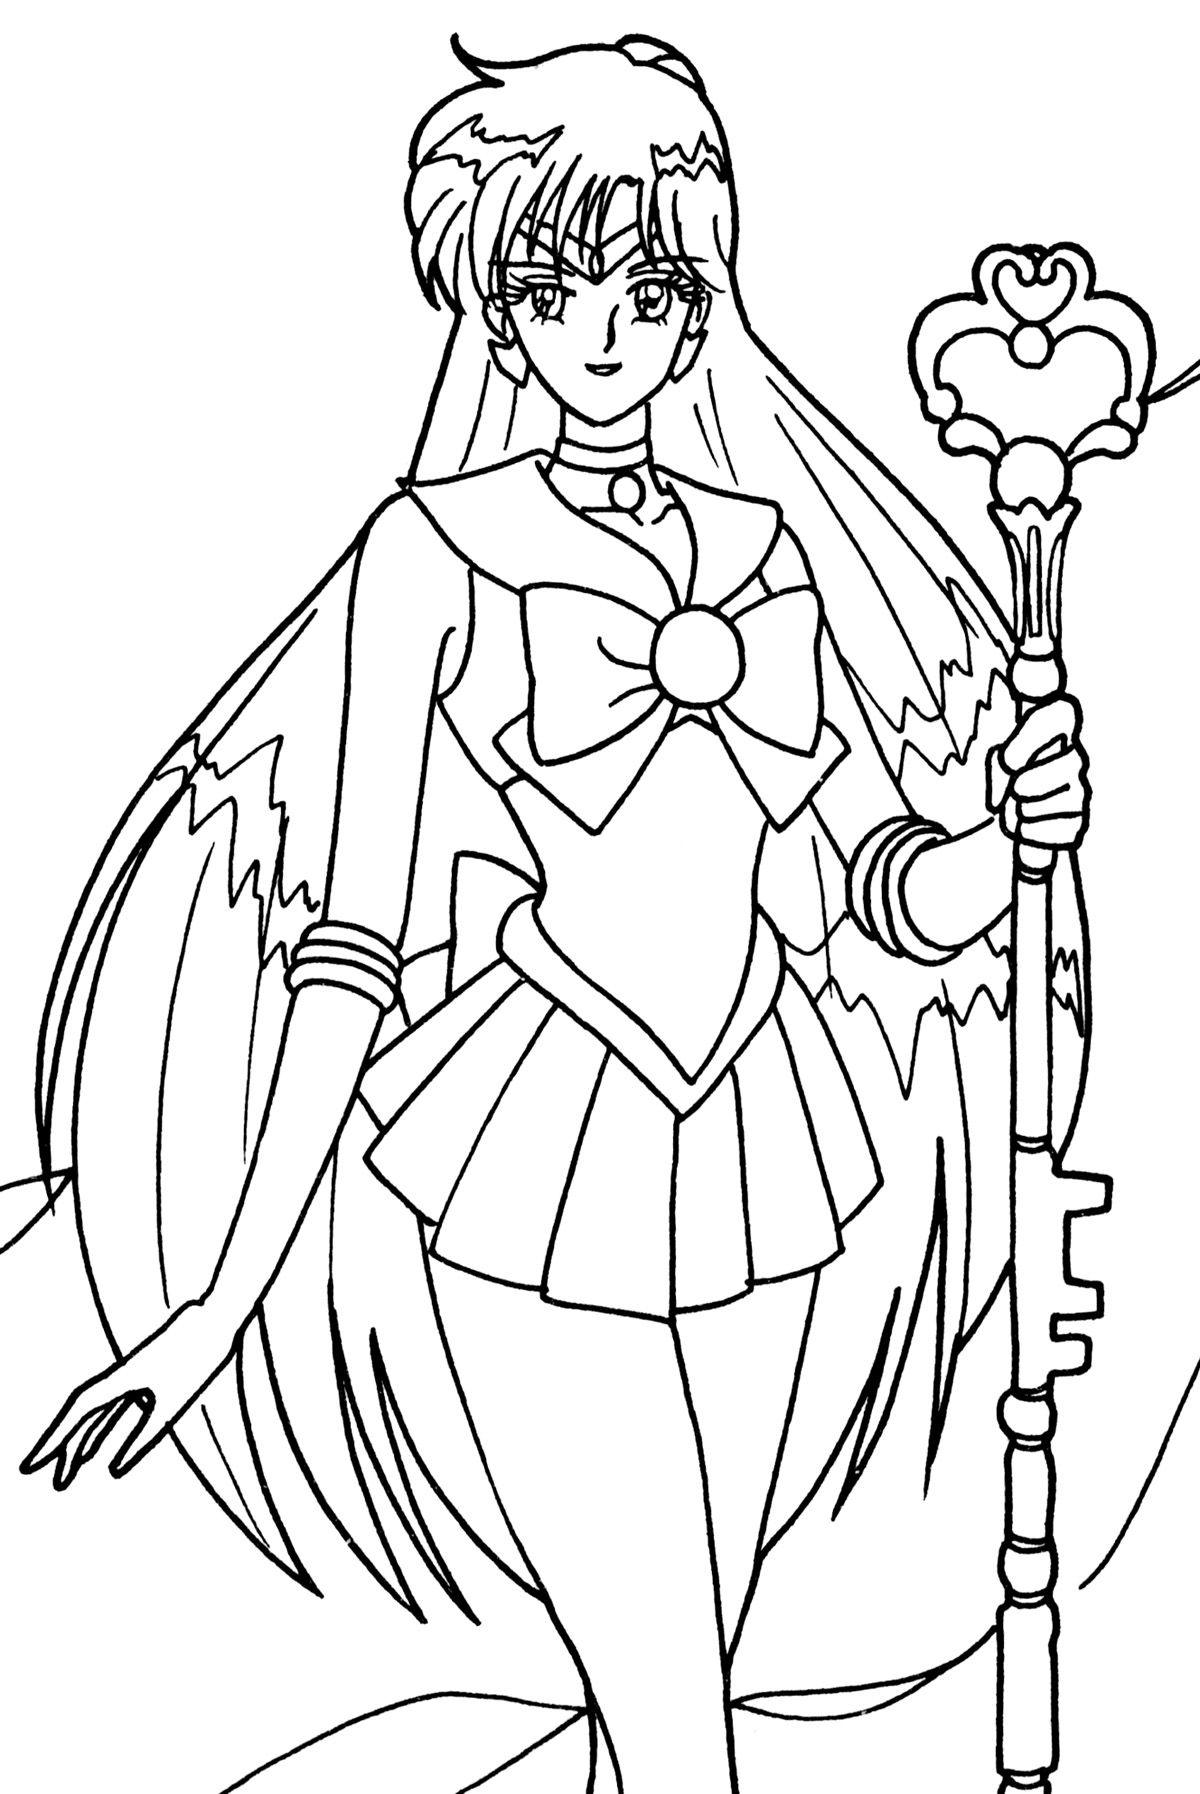 pluto003.jpg (1200×1794) Sailor moon coloring pages